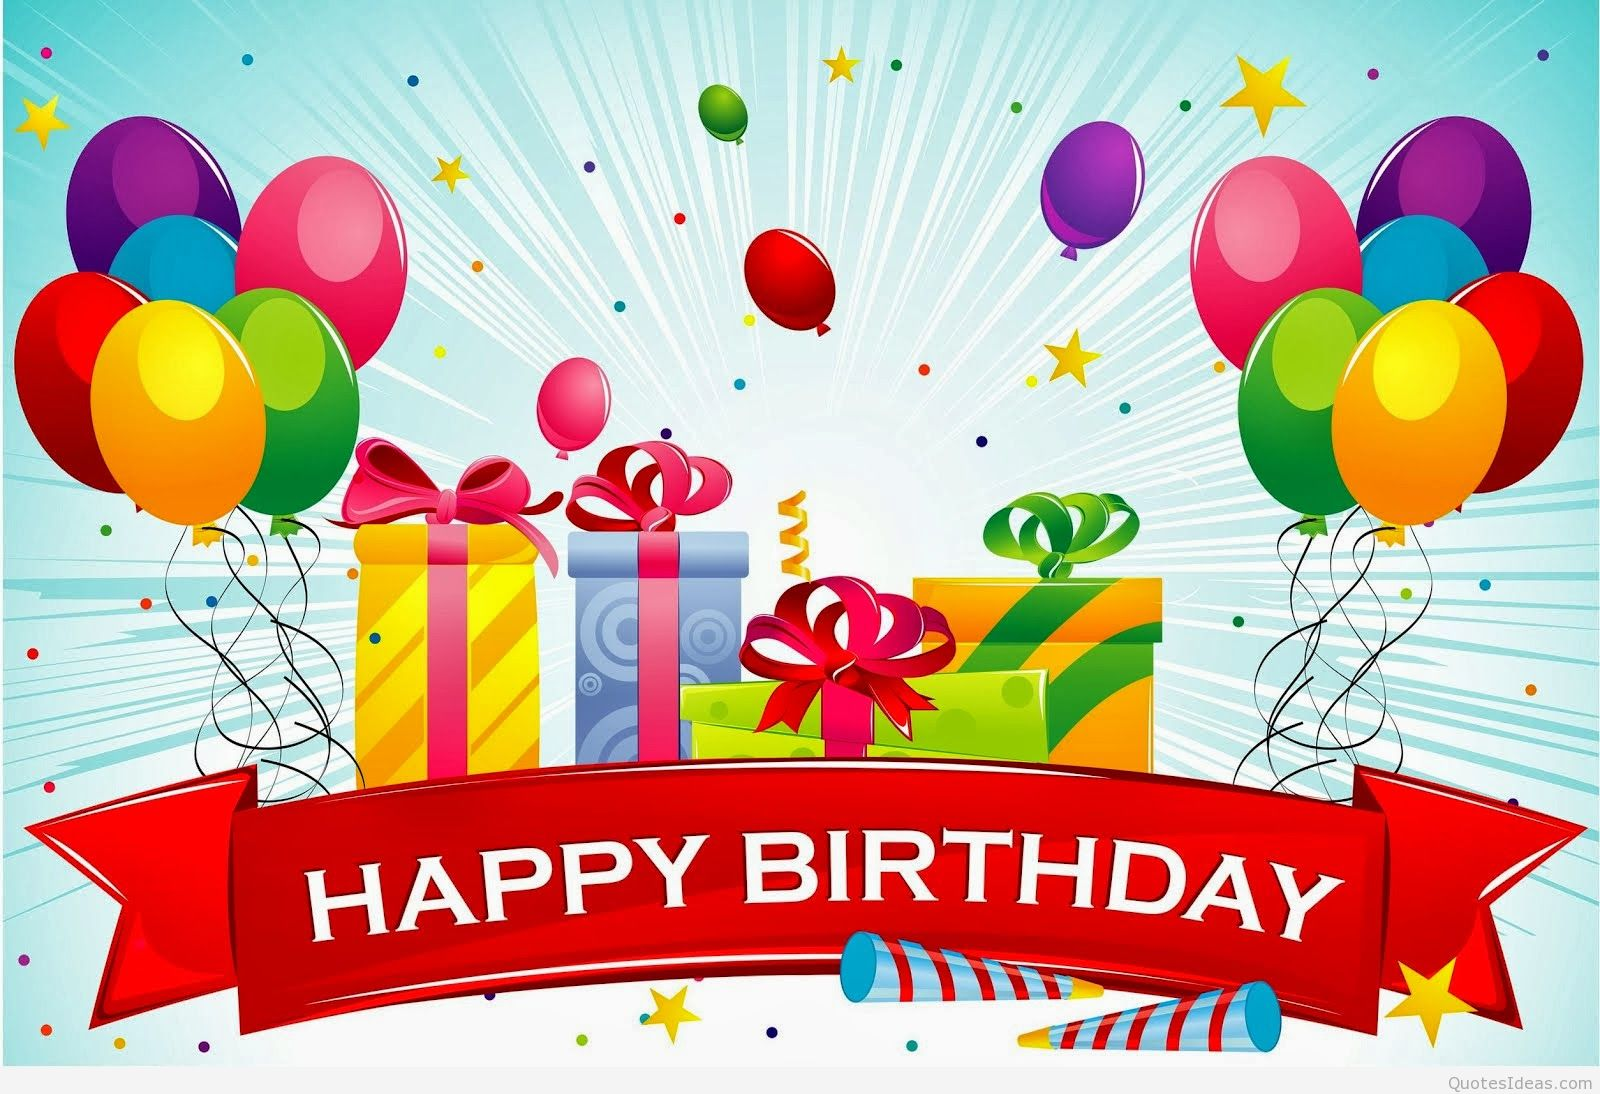 birthday wallpaper images ; Happy-Birthday-Quotes-HD-Wallpapers-And-Images-Free-Download-11